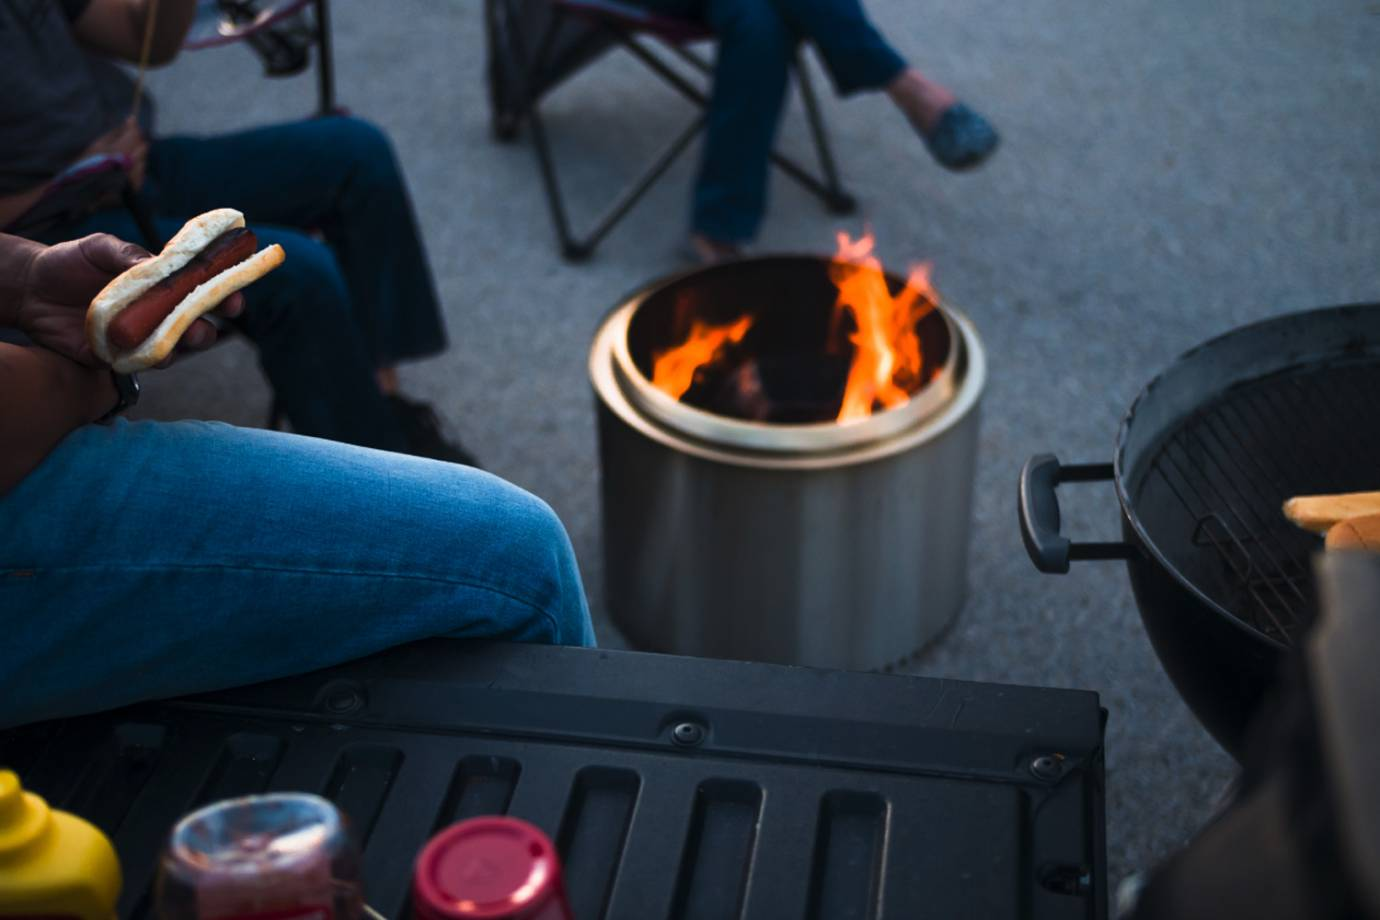 People sitting around solo stove fire pit eating